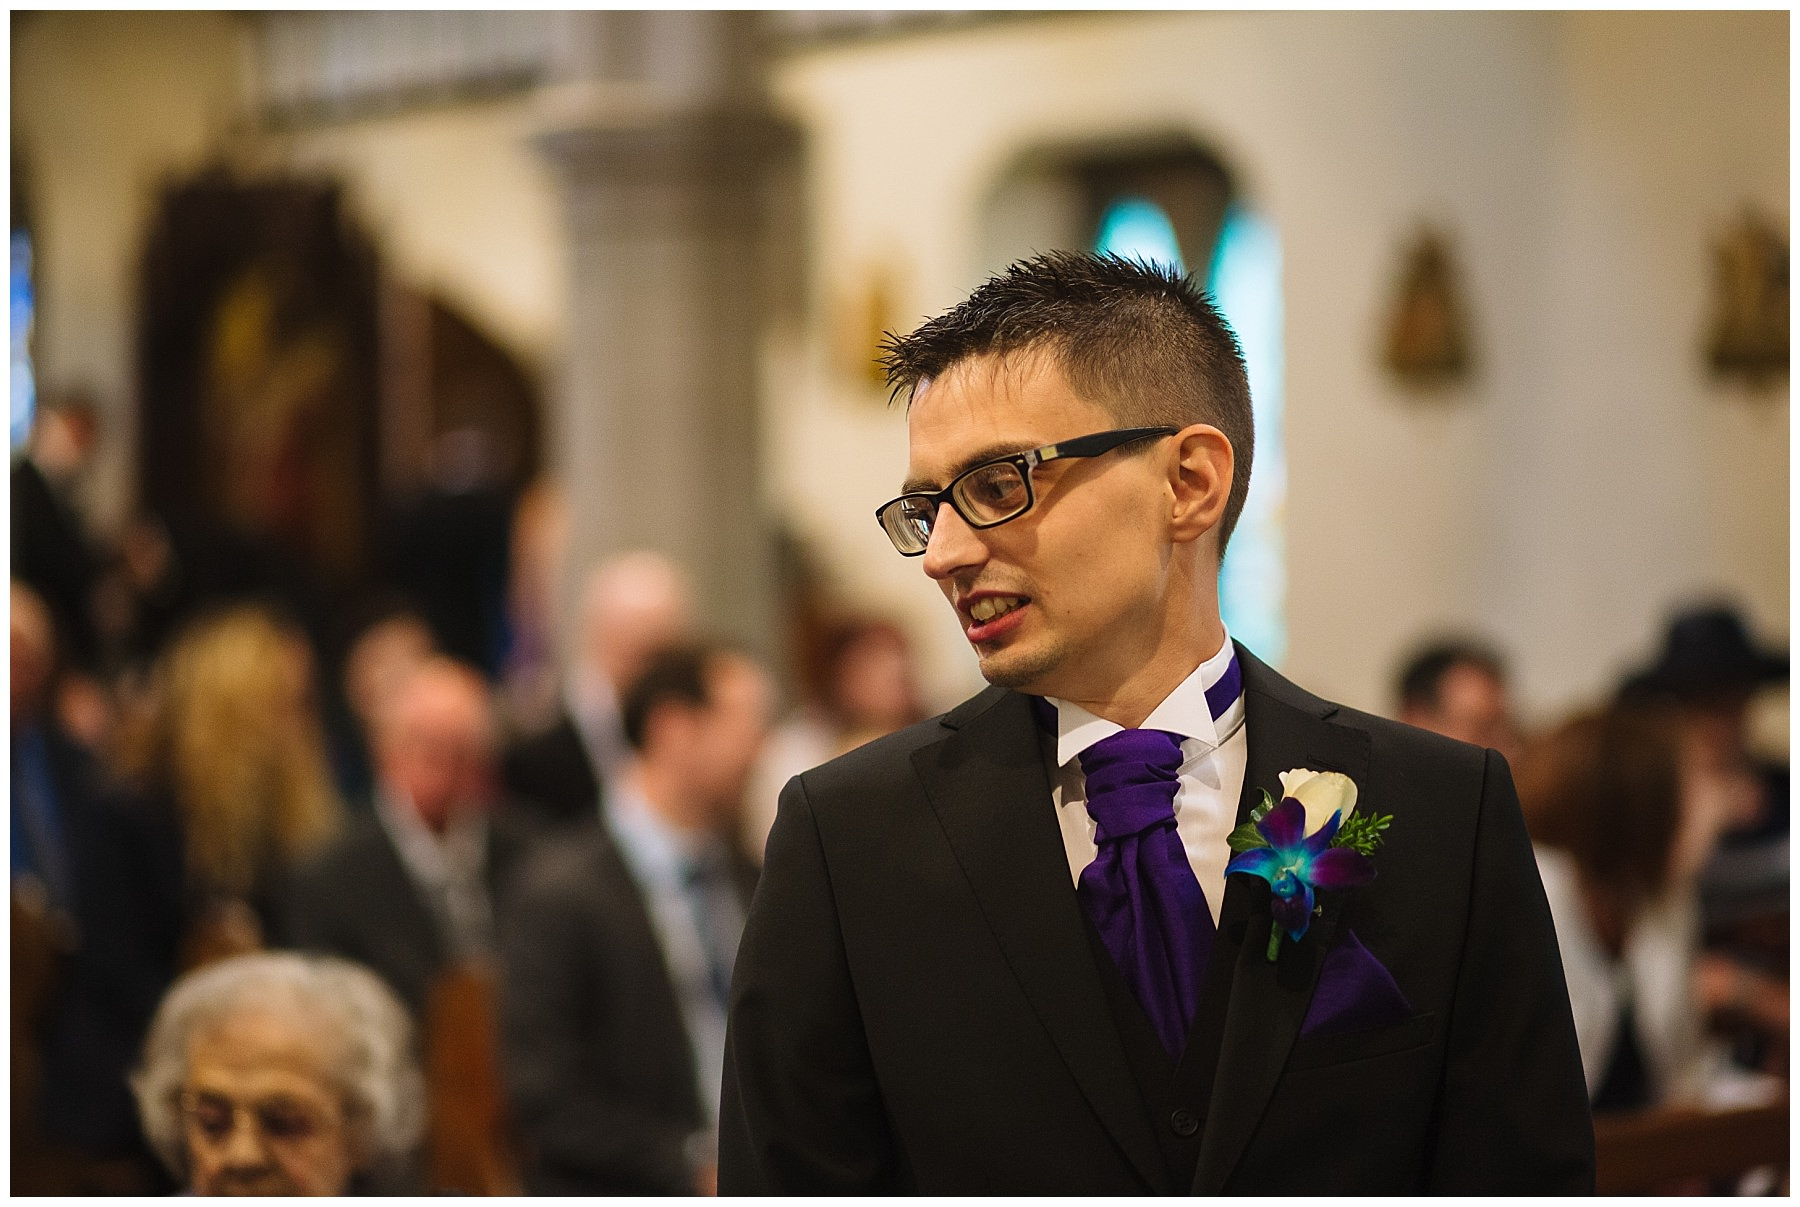 Groom waits nervously in church